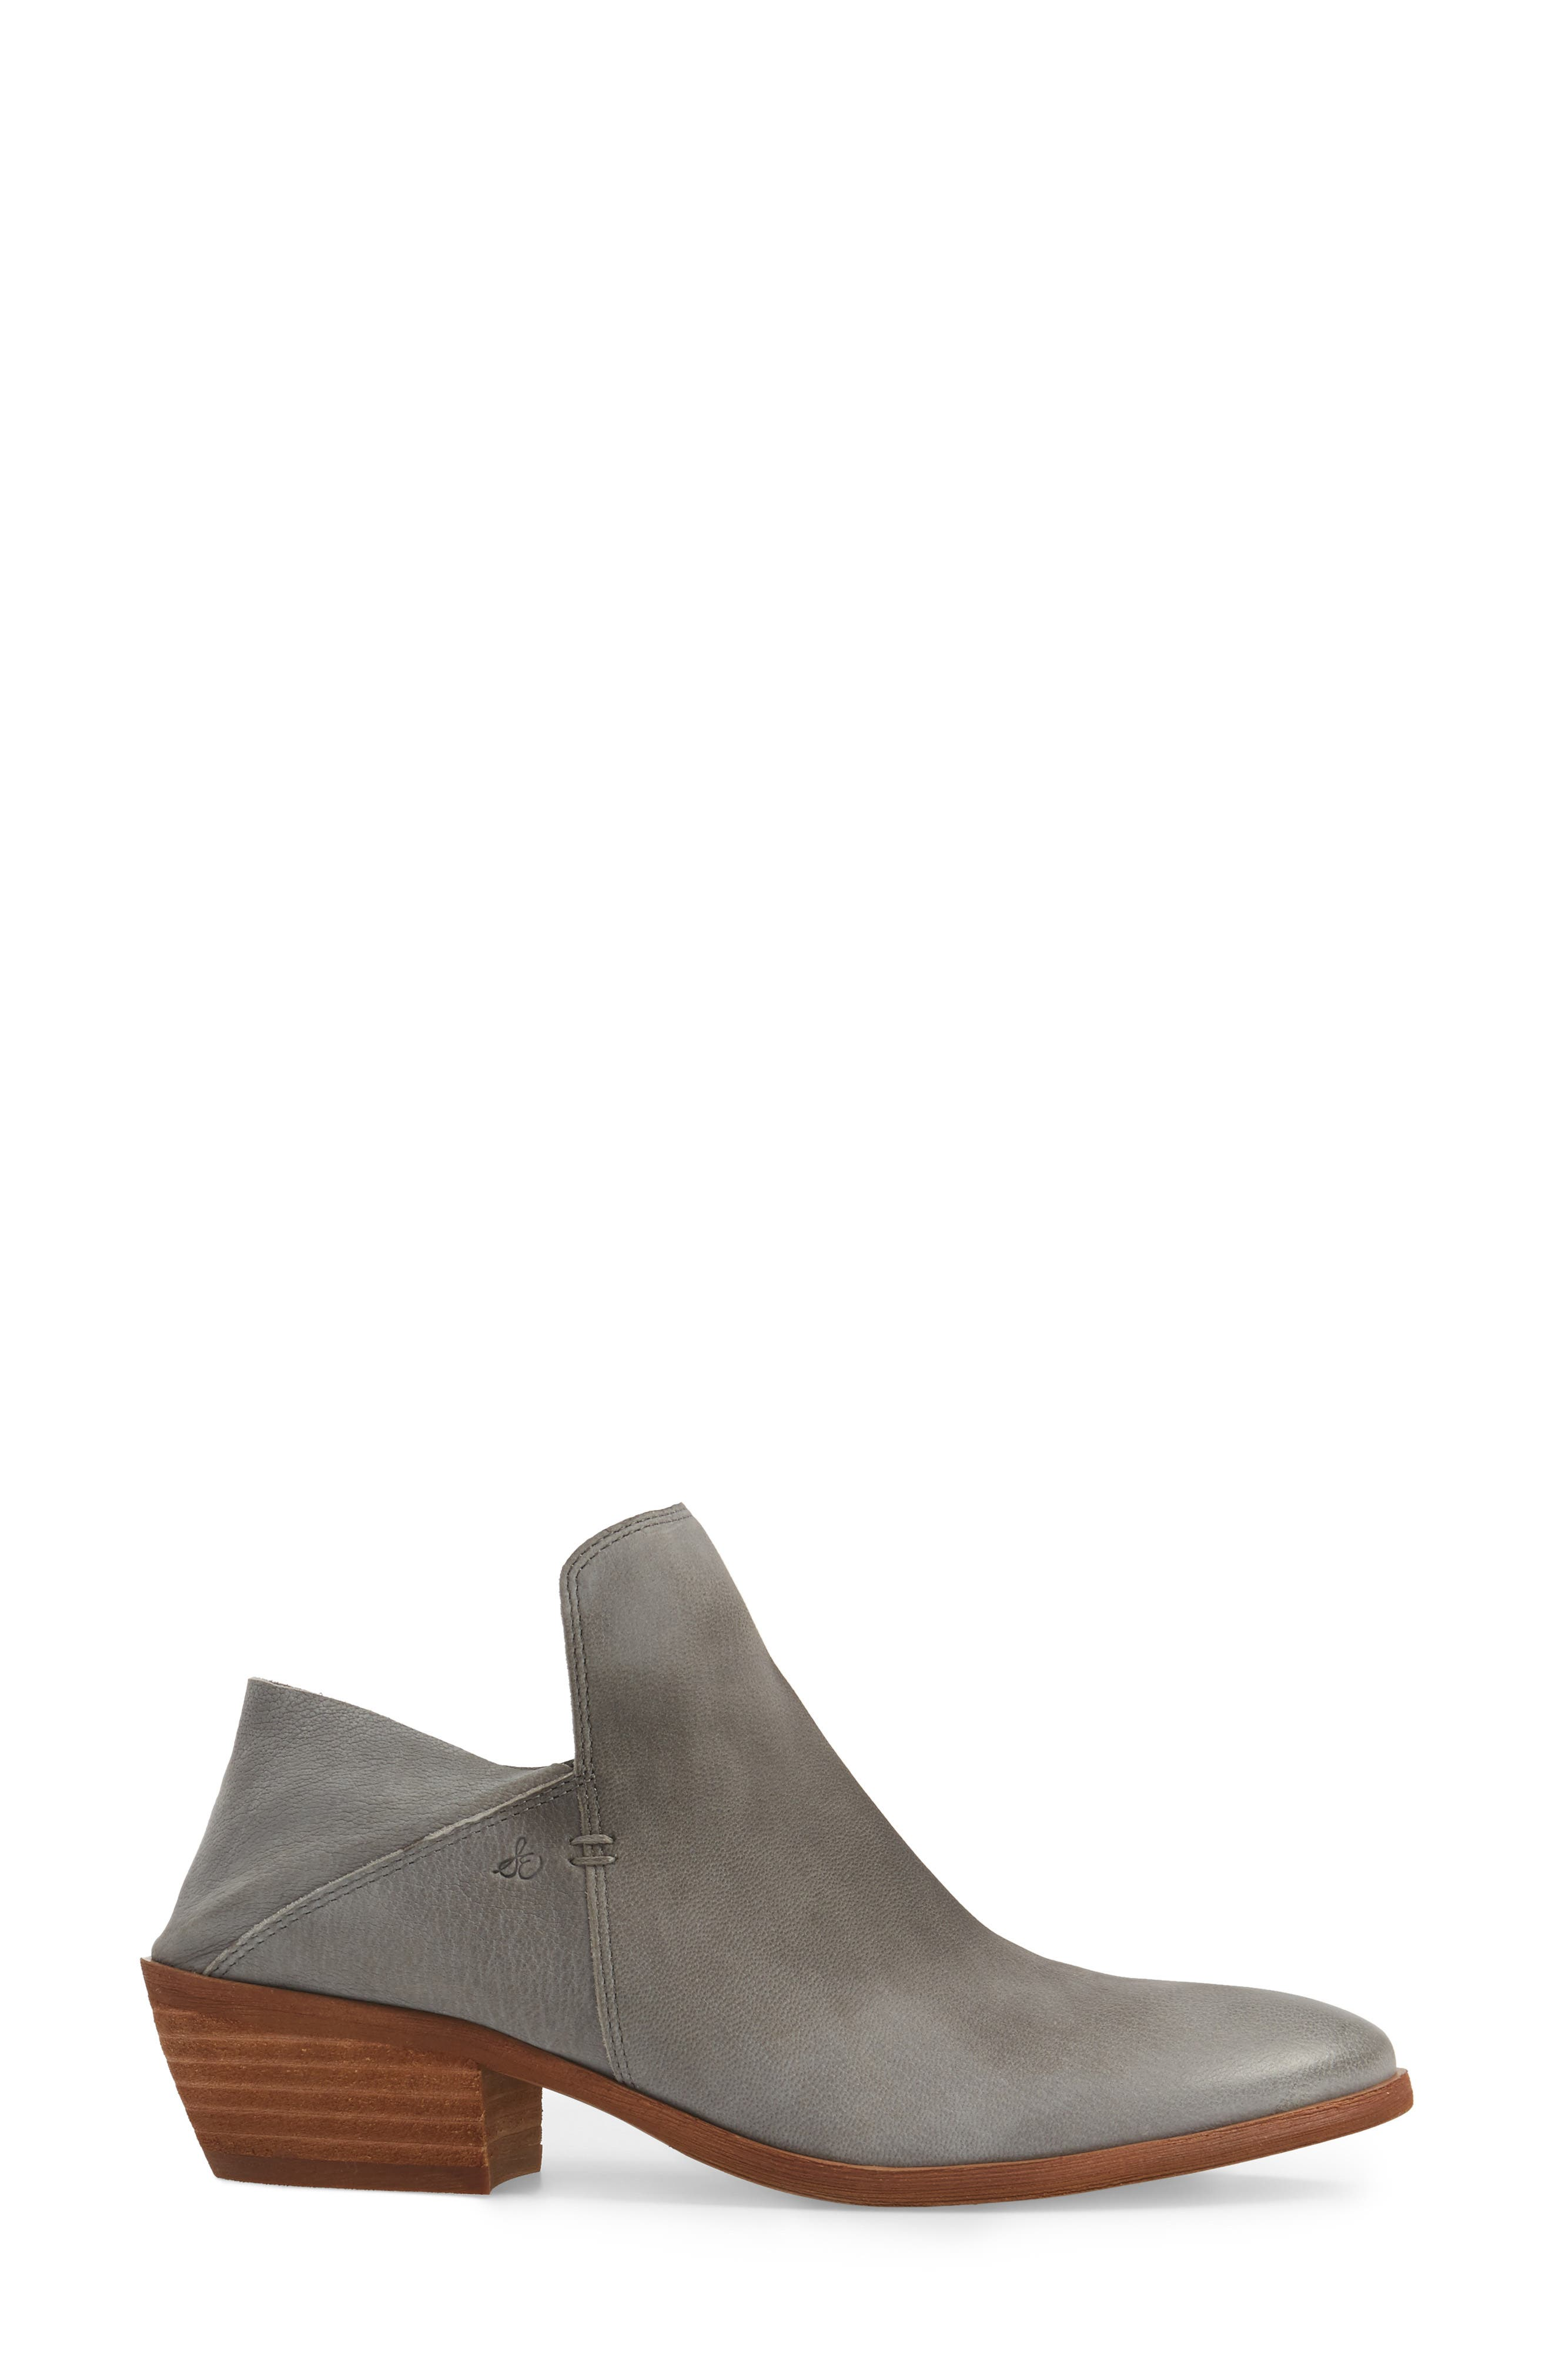 Prentice Convertible Ankle Boot,                             Alternate thumbnail 8, color,